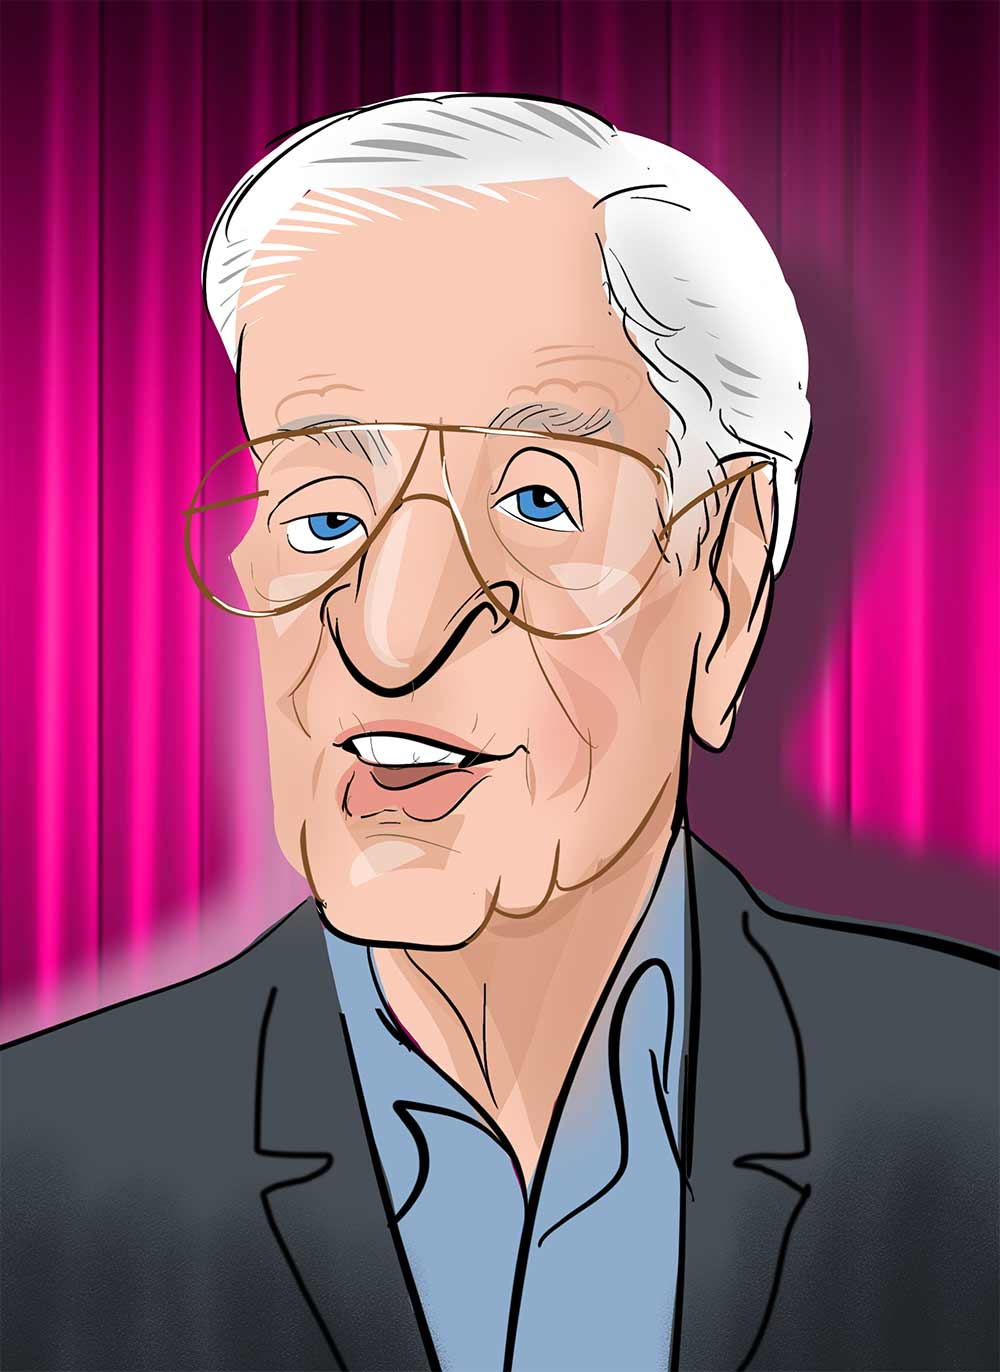 Michael Caine caricature and cartoon